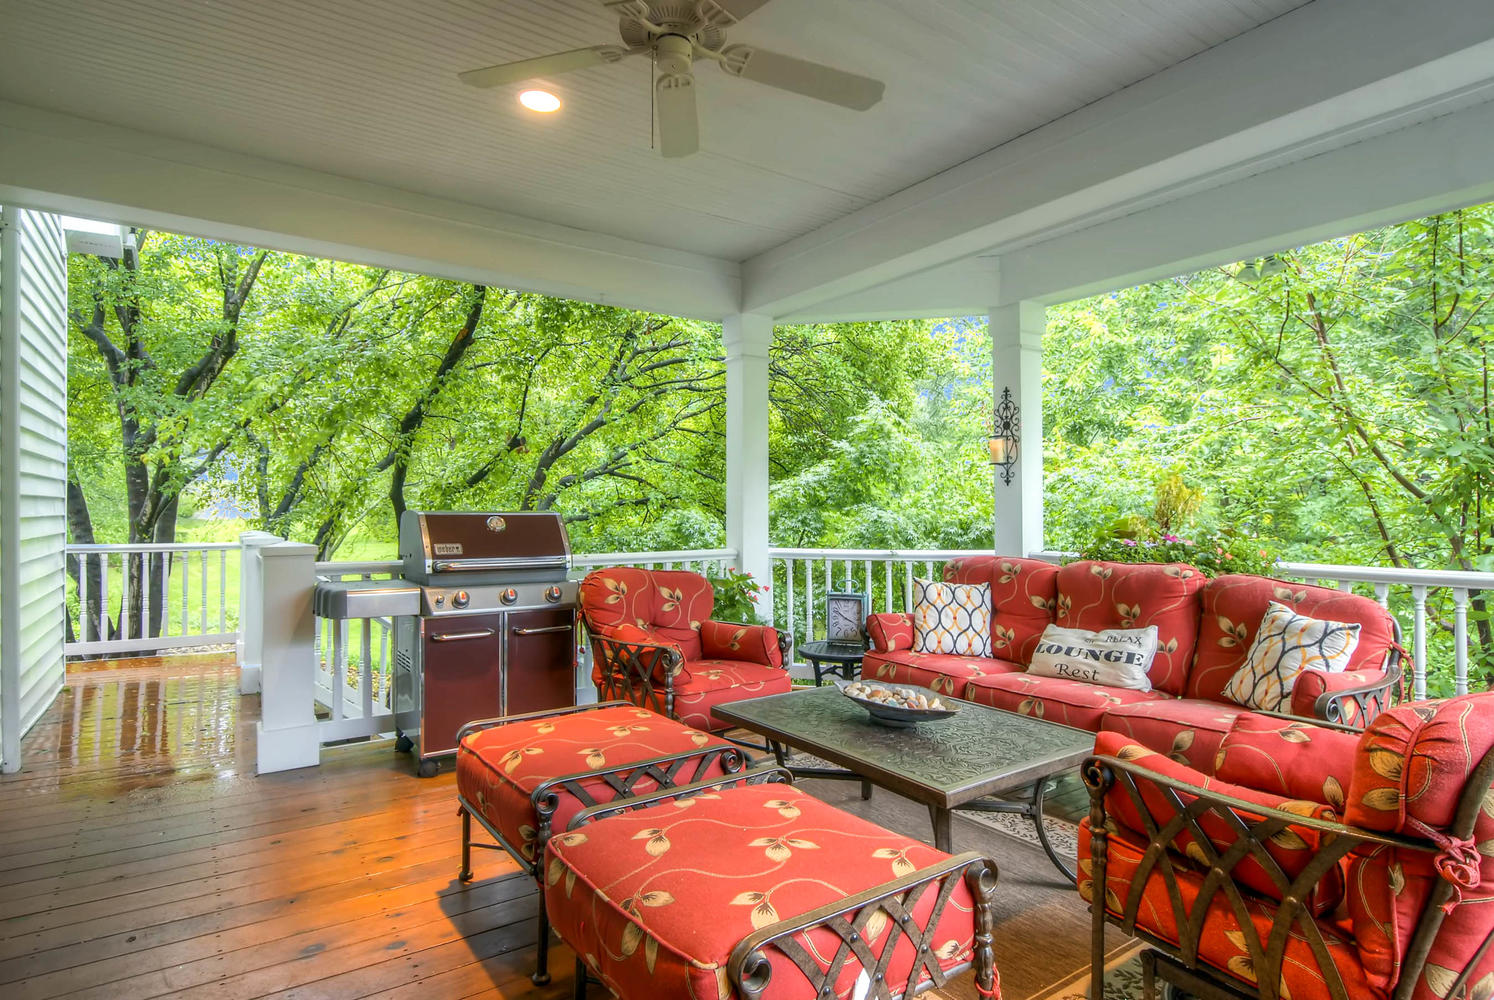 Additional photo for property listing at Magnificent Frontenac Renovation in Gated Community with Pool 49 Manderleigh Estates Court Frontenac, Missouri 63131 United States